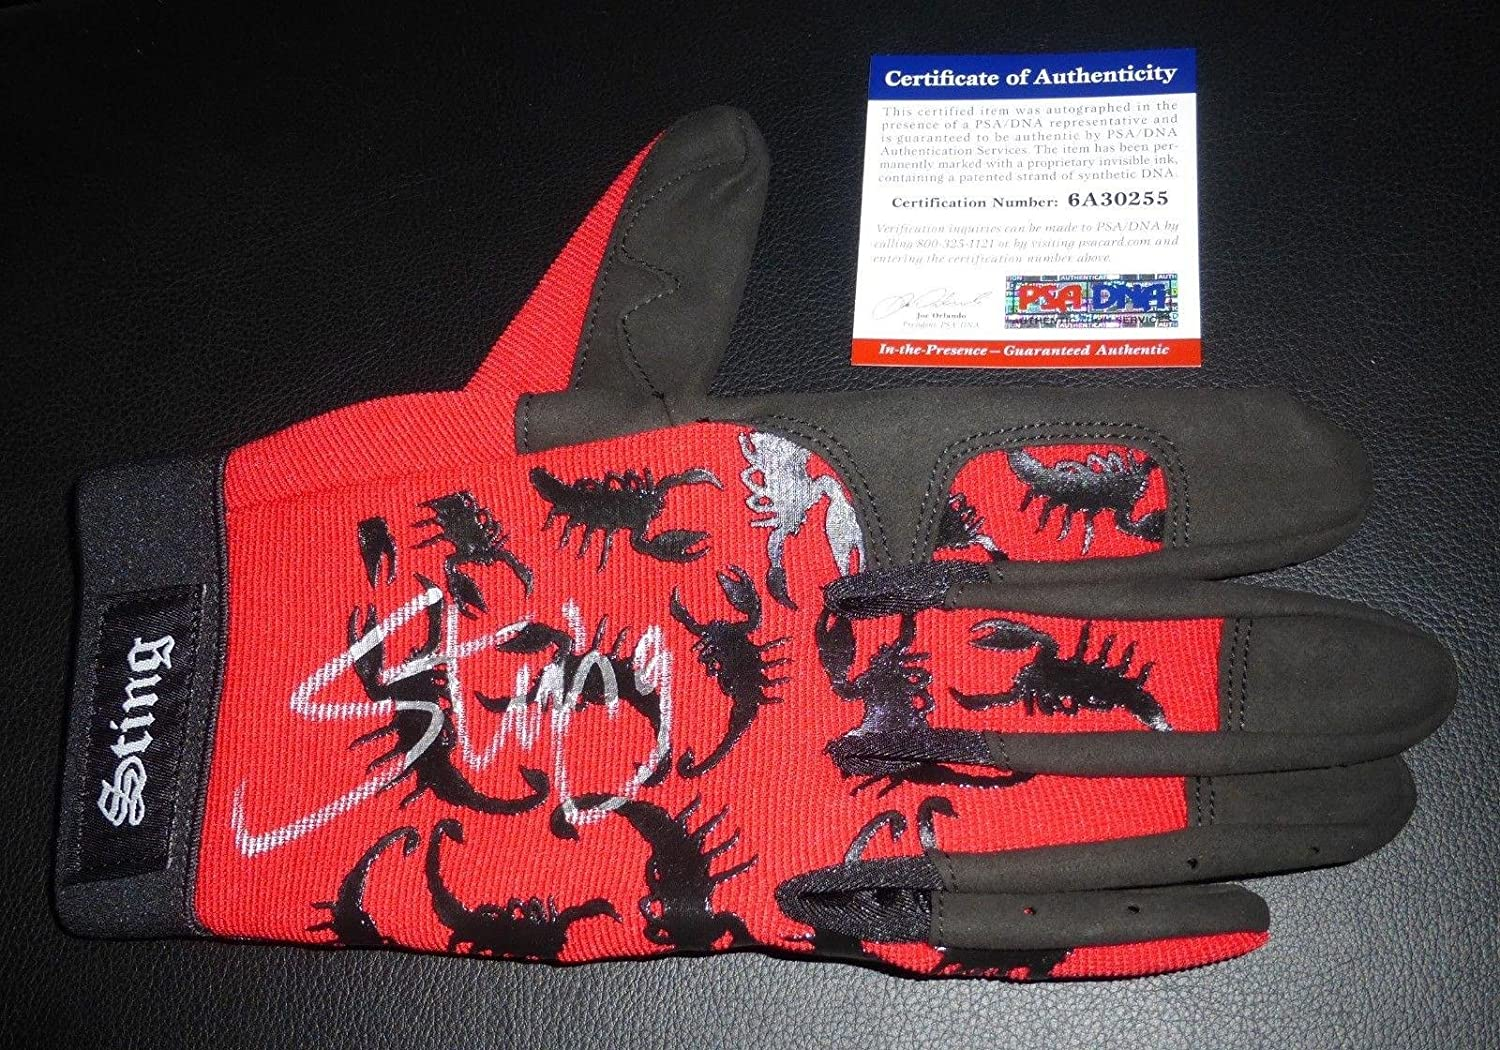 Sting Signed Official TNA In Ring Model Glove COA WWE WCW Wrestling Auto - PSA/DNA Certified - Autographed Wrestling Miscellaneous Items